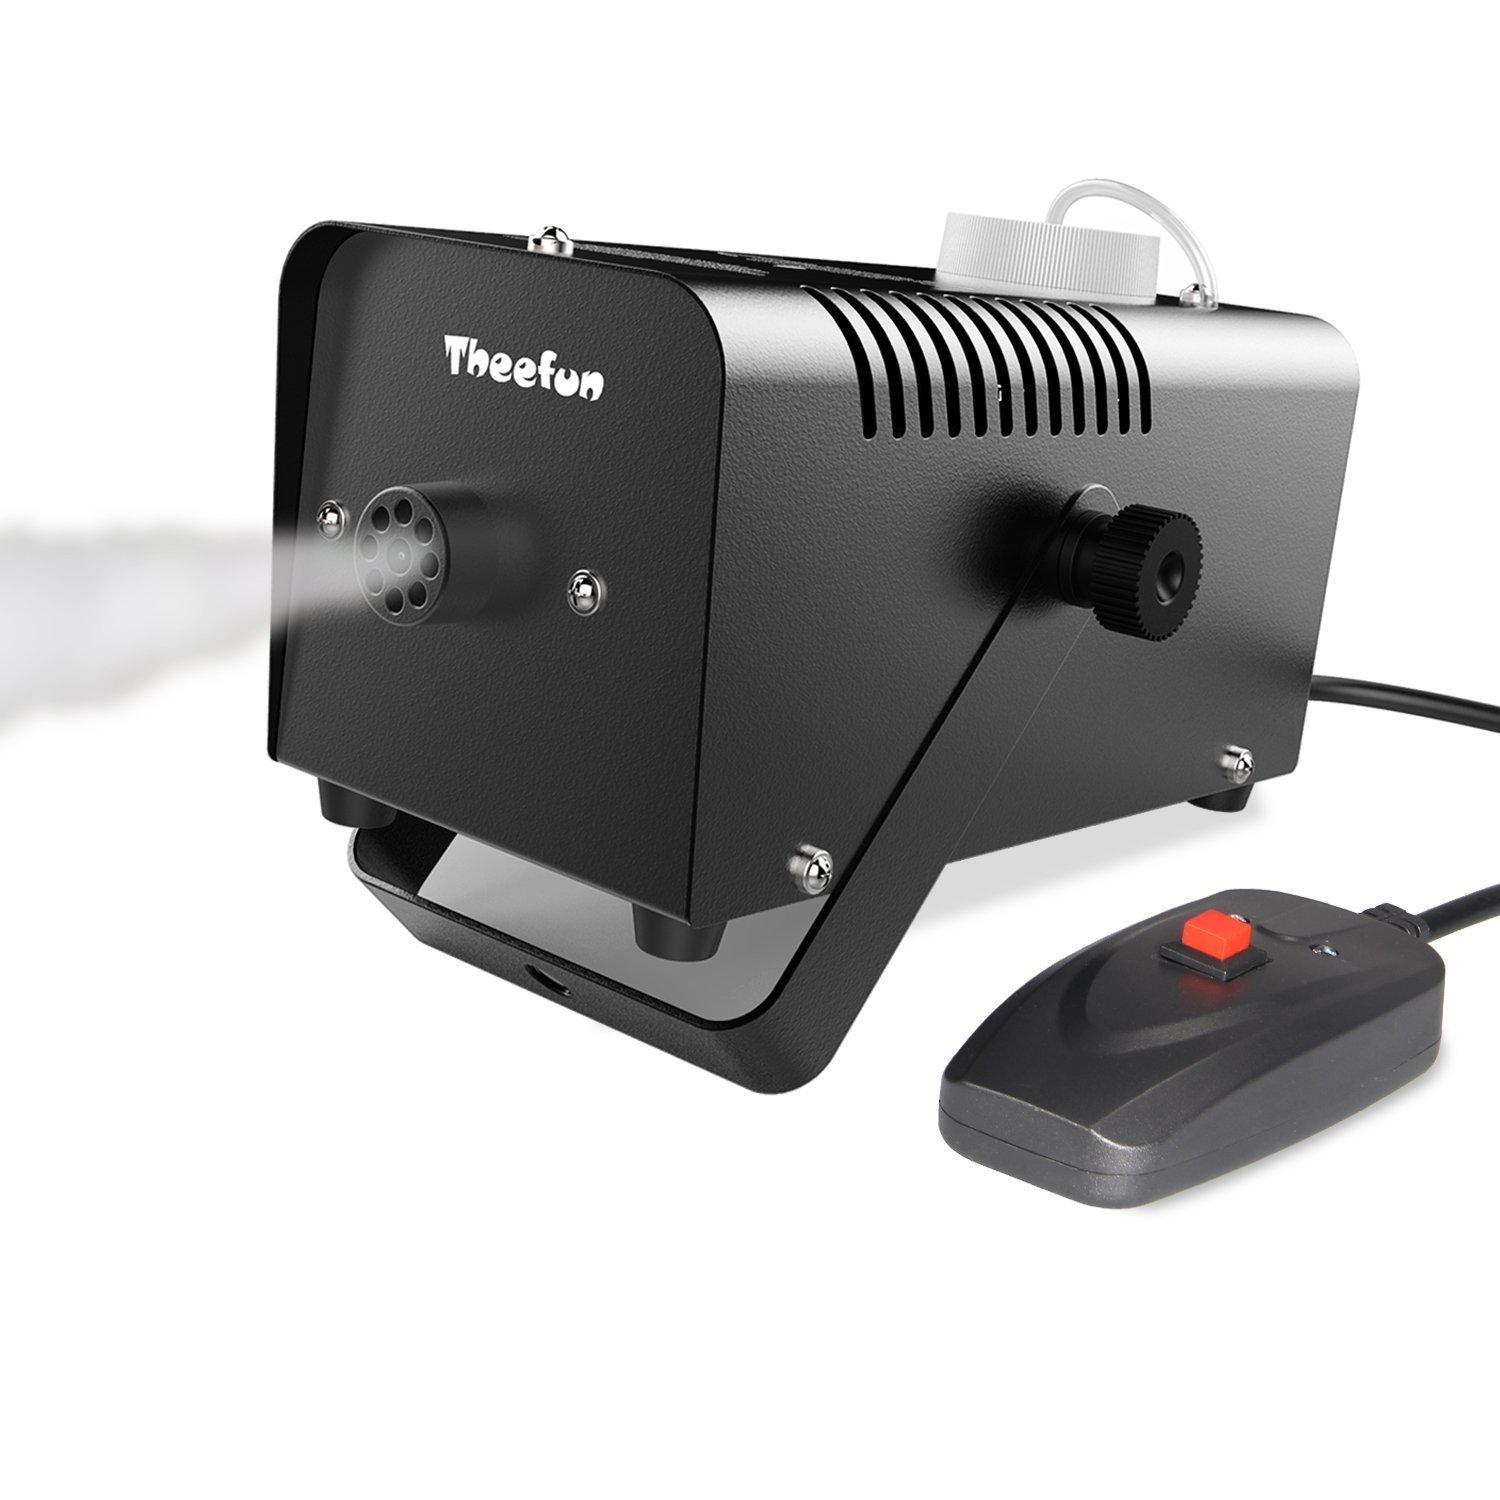 Theefun 400-Watt Portable Halloween and Party Fog Machine with Wired Remote Control for Holidays, Weddings - impressive output TFM01